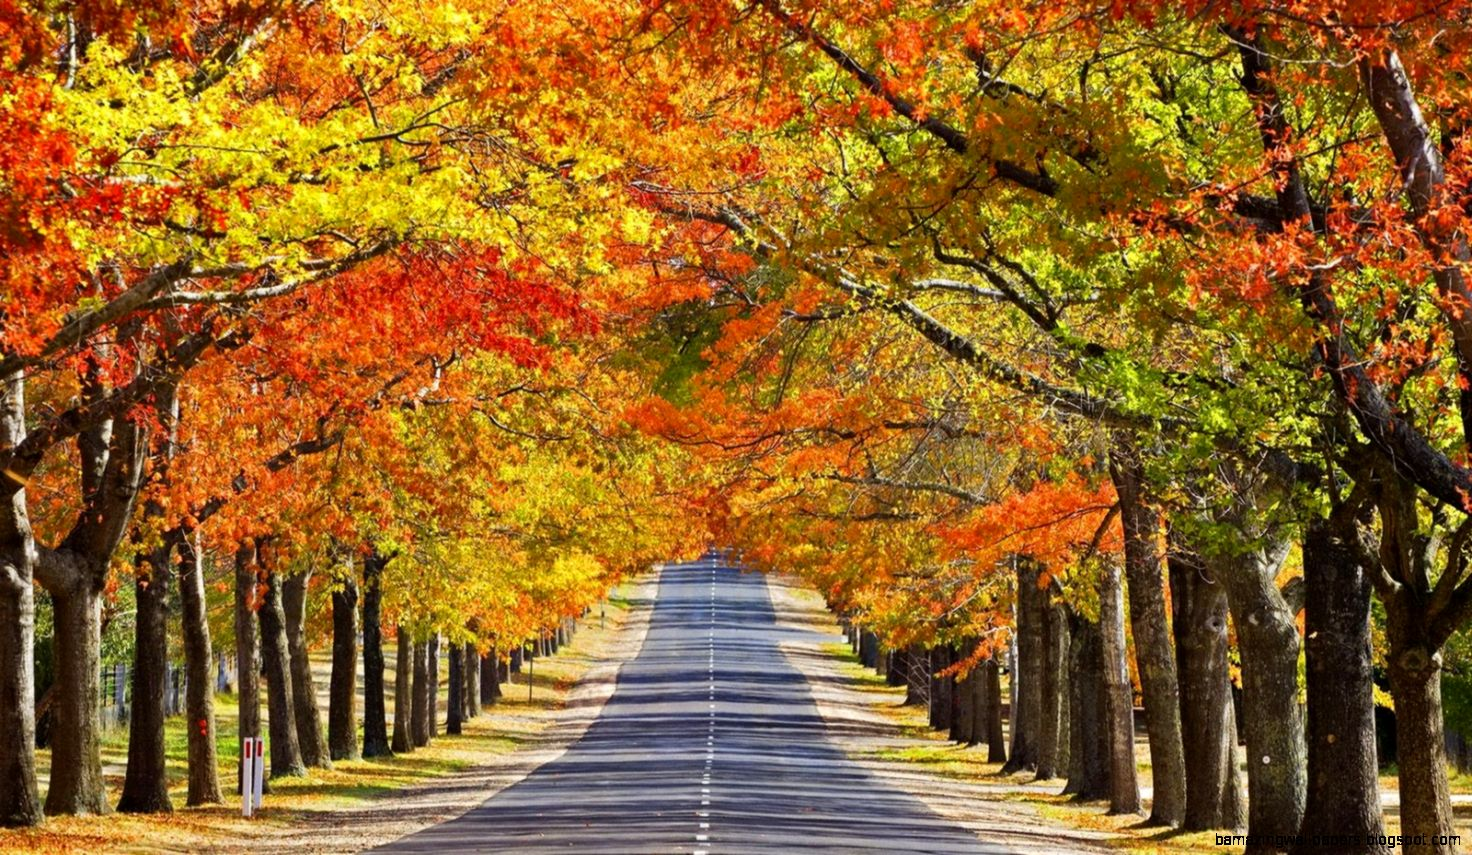 Autumn Nature Wallpaper Desktop   wallpaper